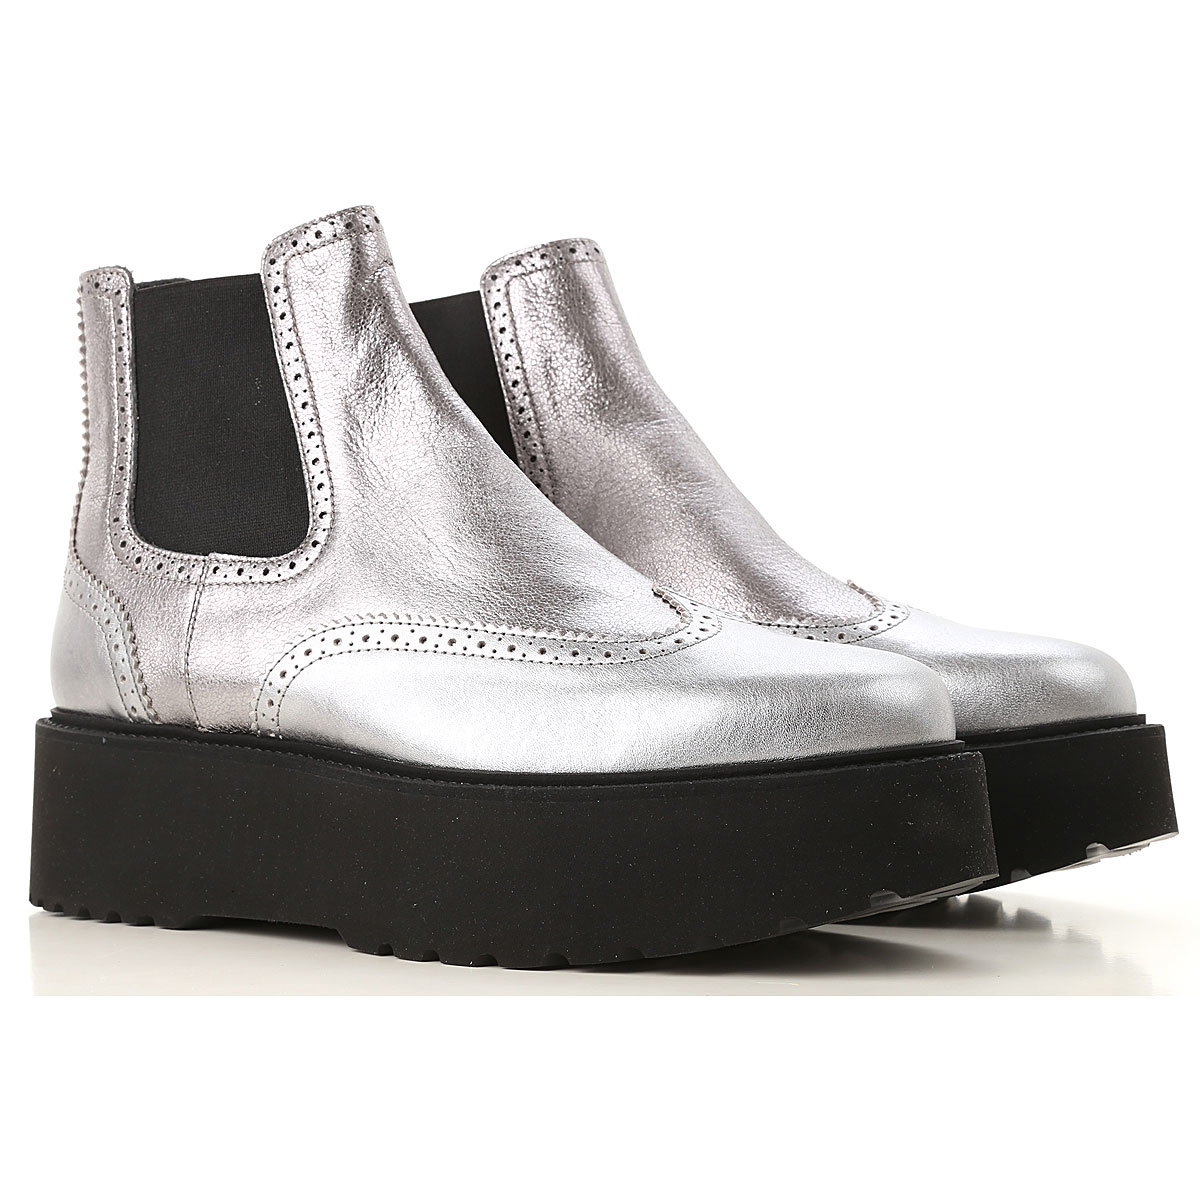 Hogan Chelsea Boots for Women Silver Canada - GOOFASH - Womens BOOTS